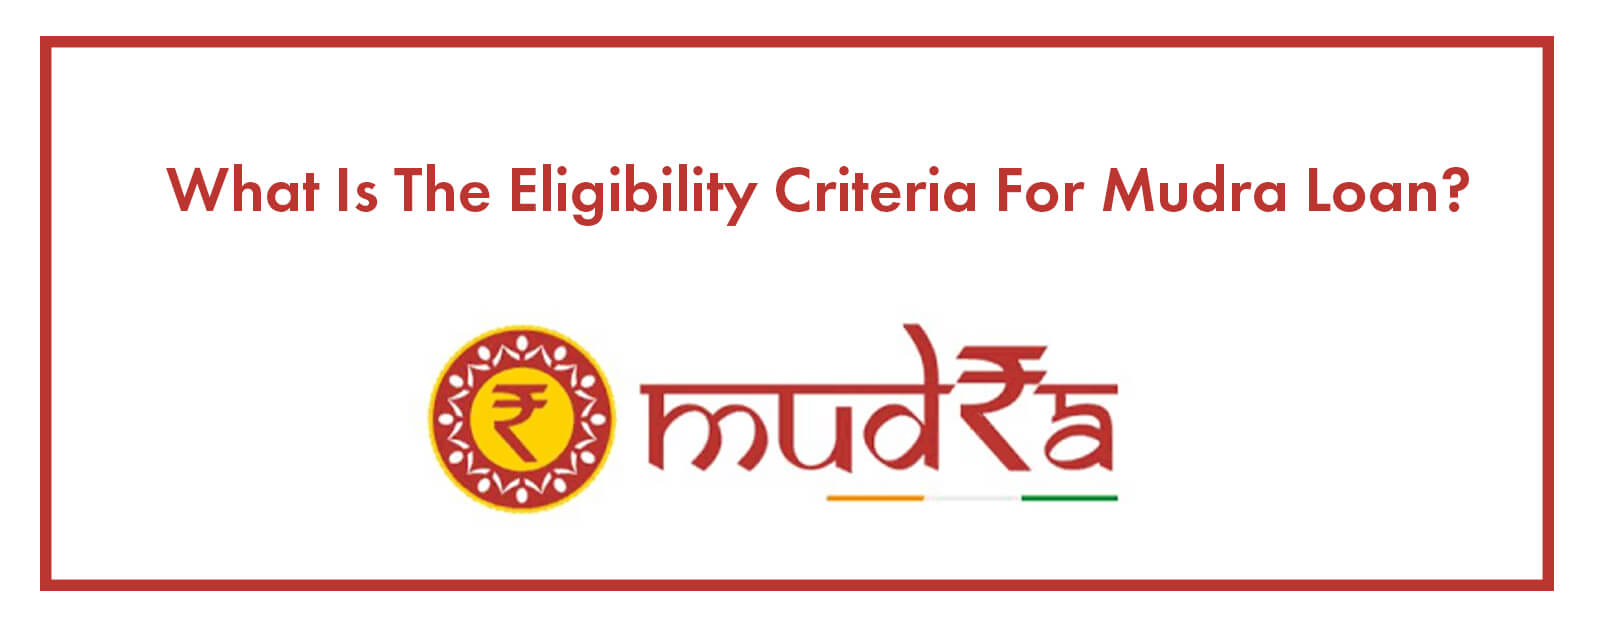 What Is The Eligibility Criteria For Mudra Loan?